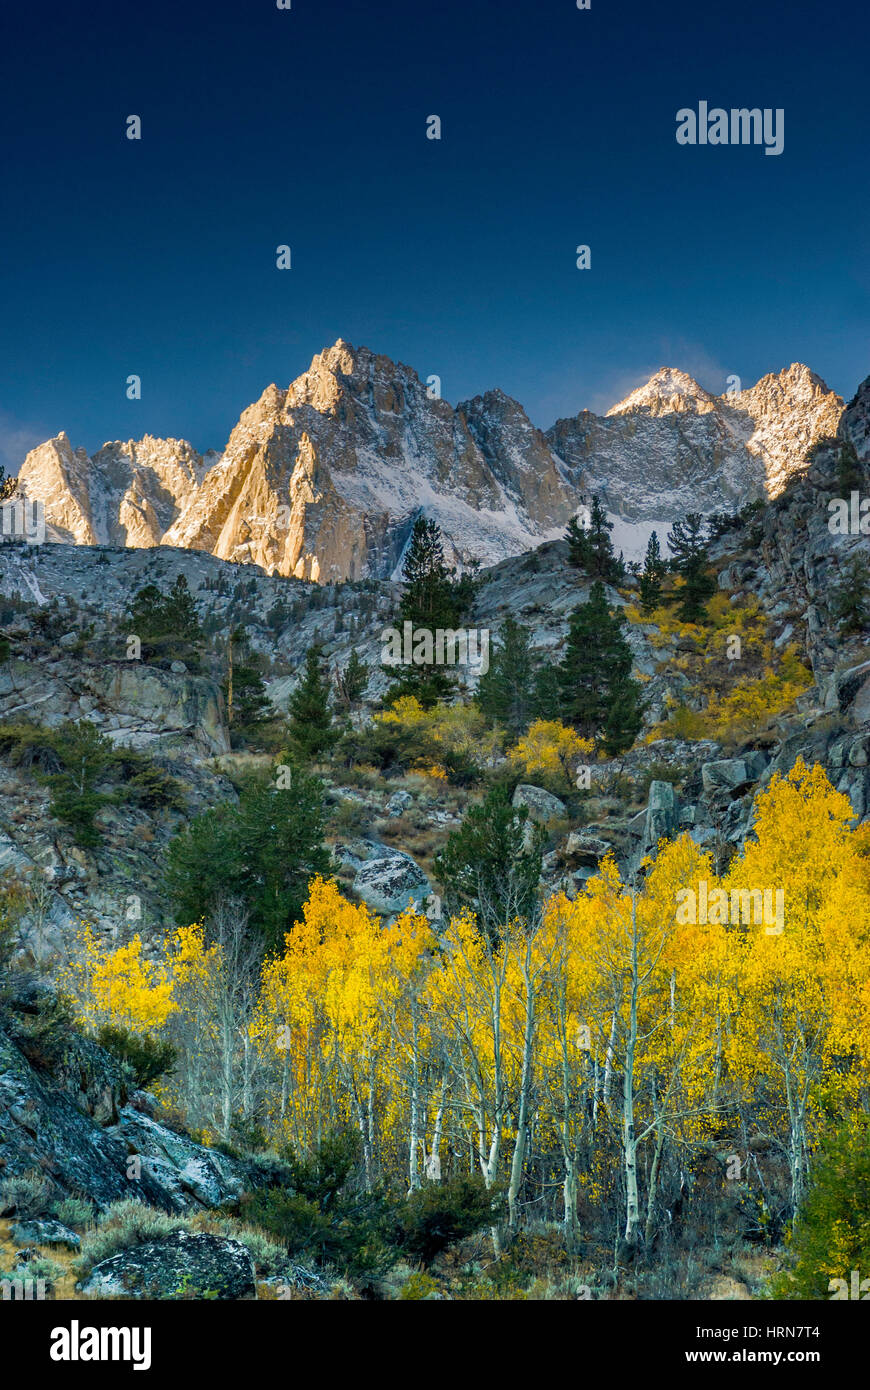 Picture Peak and aspens in fall foliage in Lake Sabrina Basin in Evolution Region, John Muir Wilderness, Sierra - Stock Image